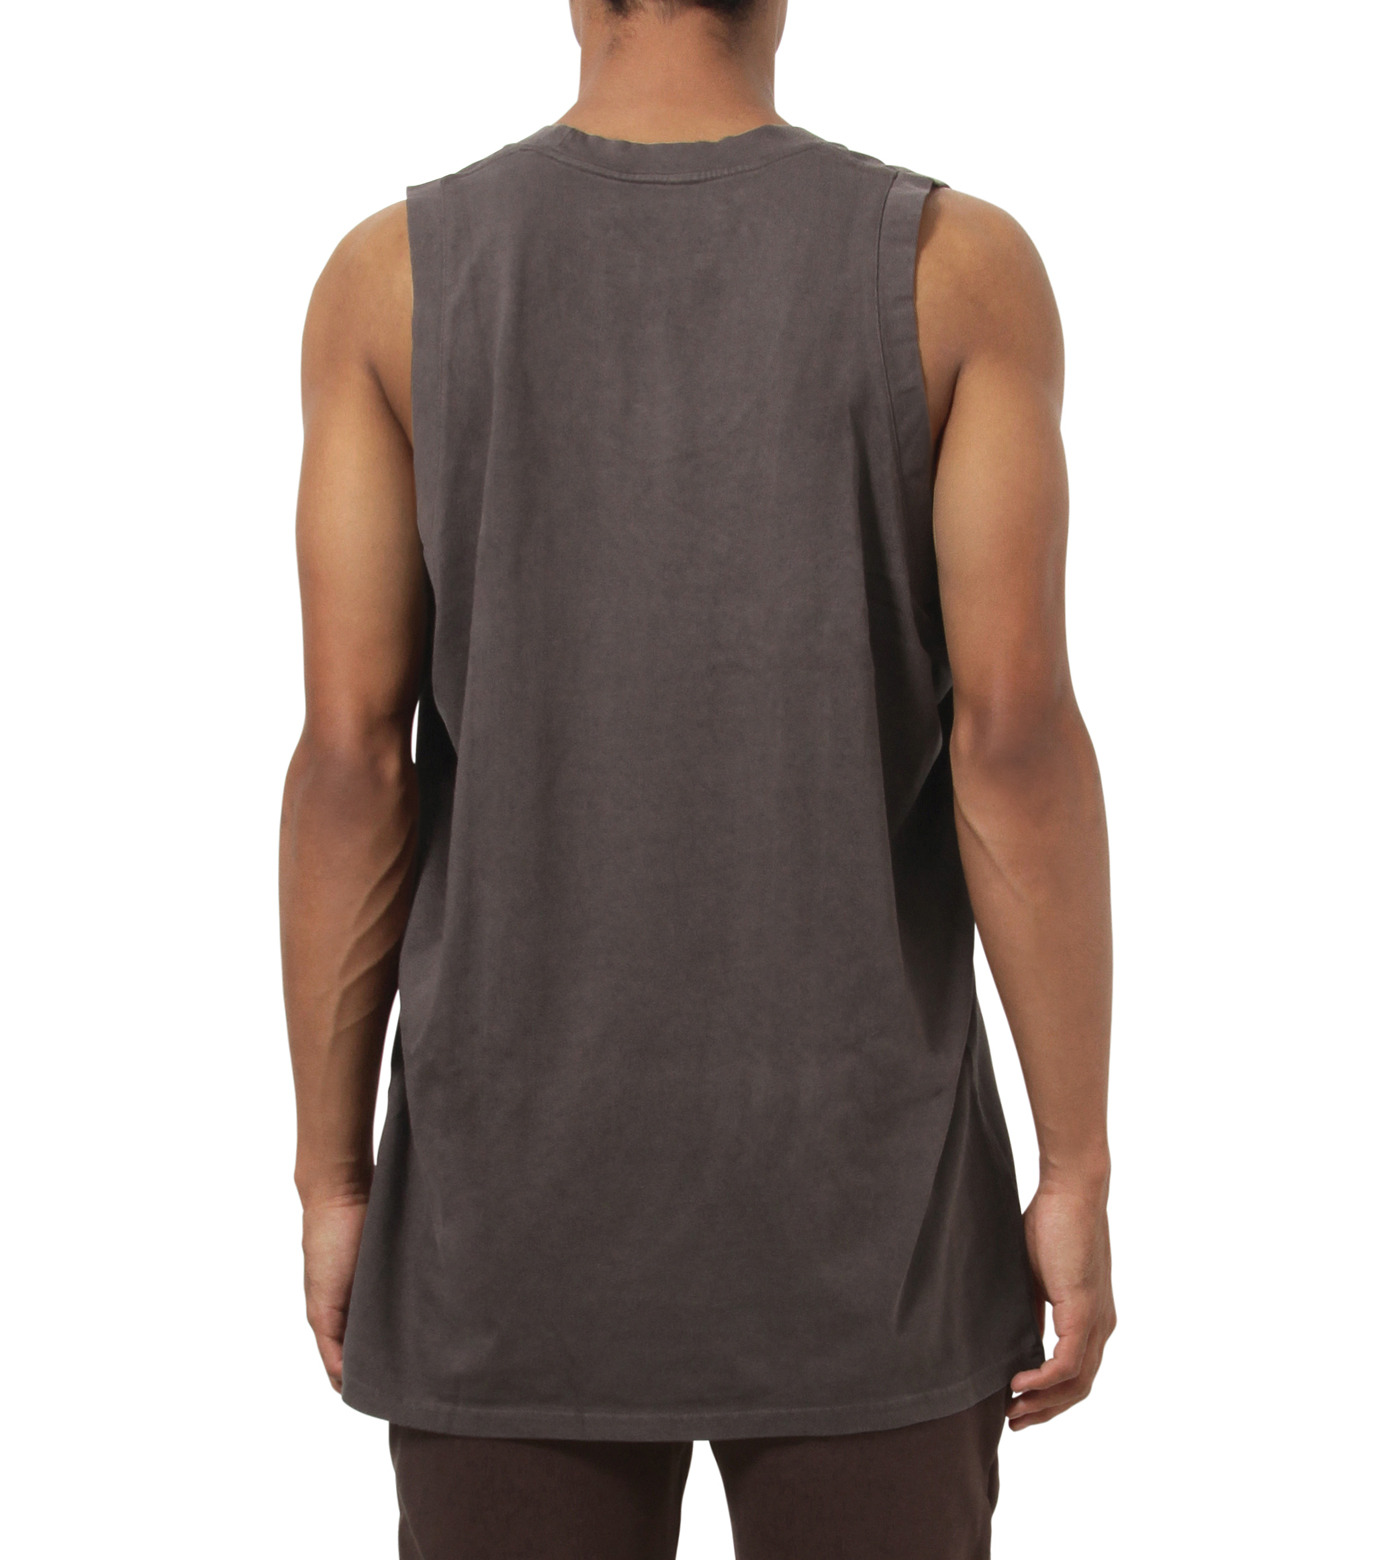 YEEZY adidas(YEEZY adidas)のJersey Tank-BROWN(カットソー/cut and sewn)-AO2609-42 拡大詳細画像2